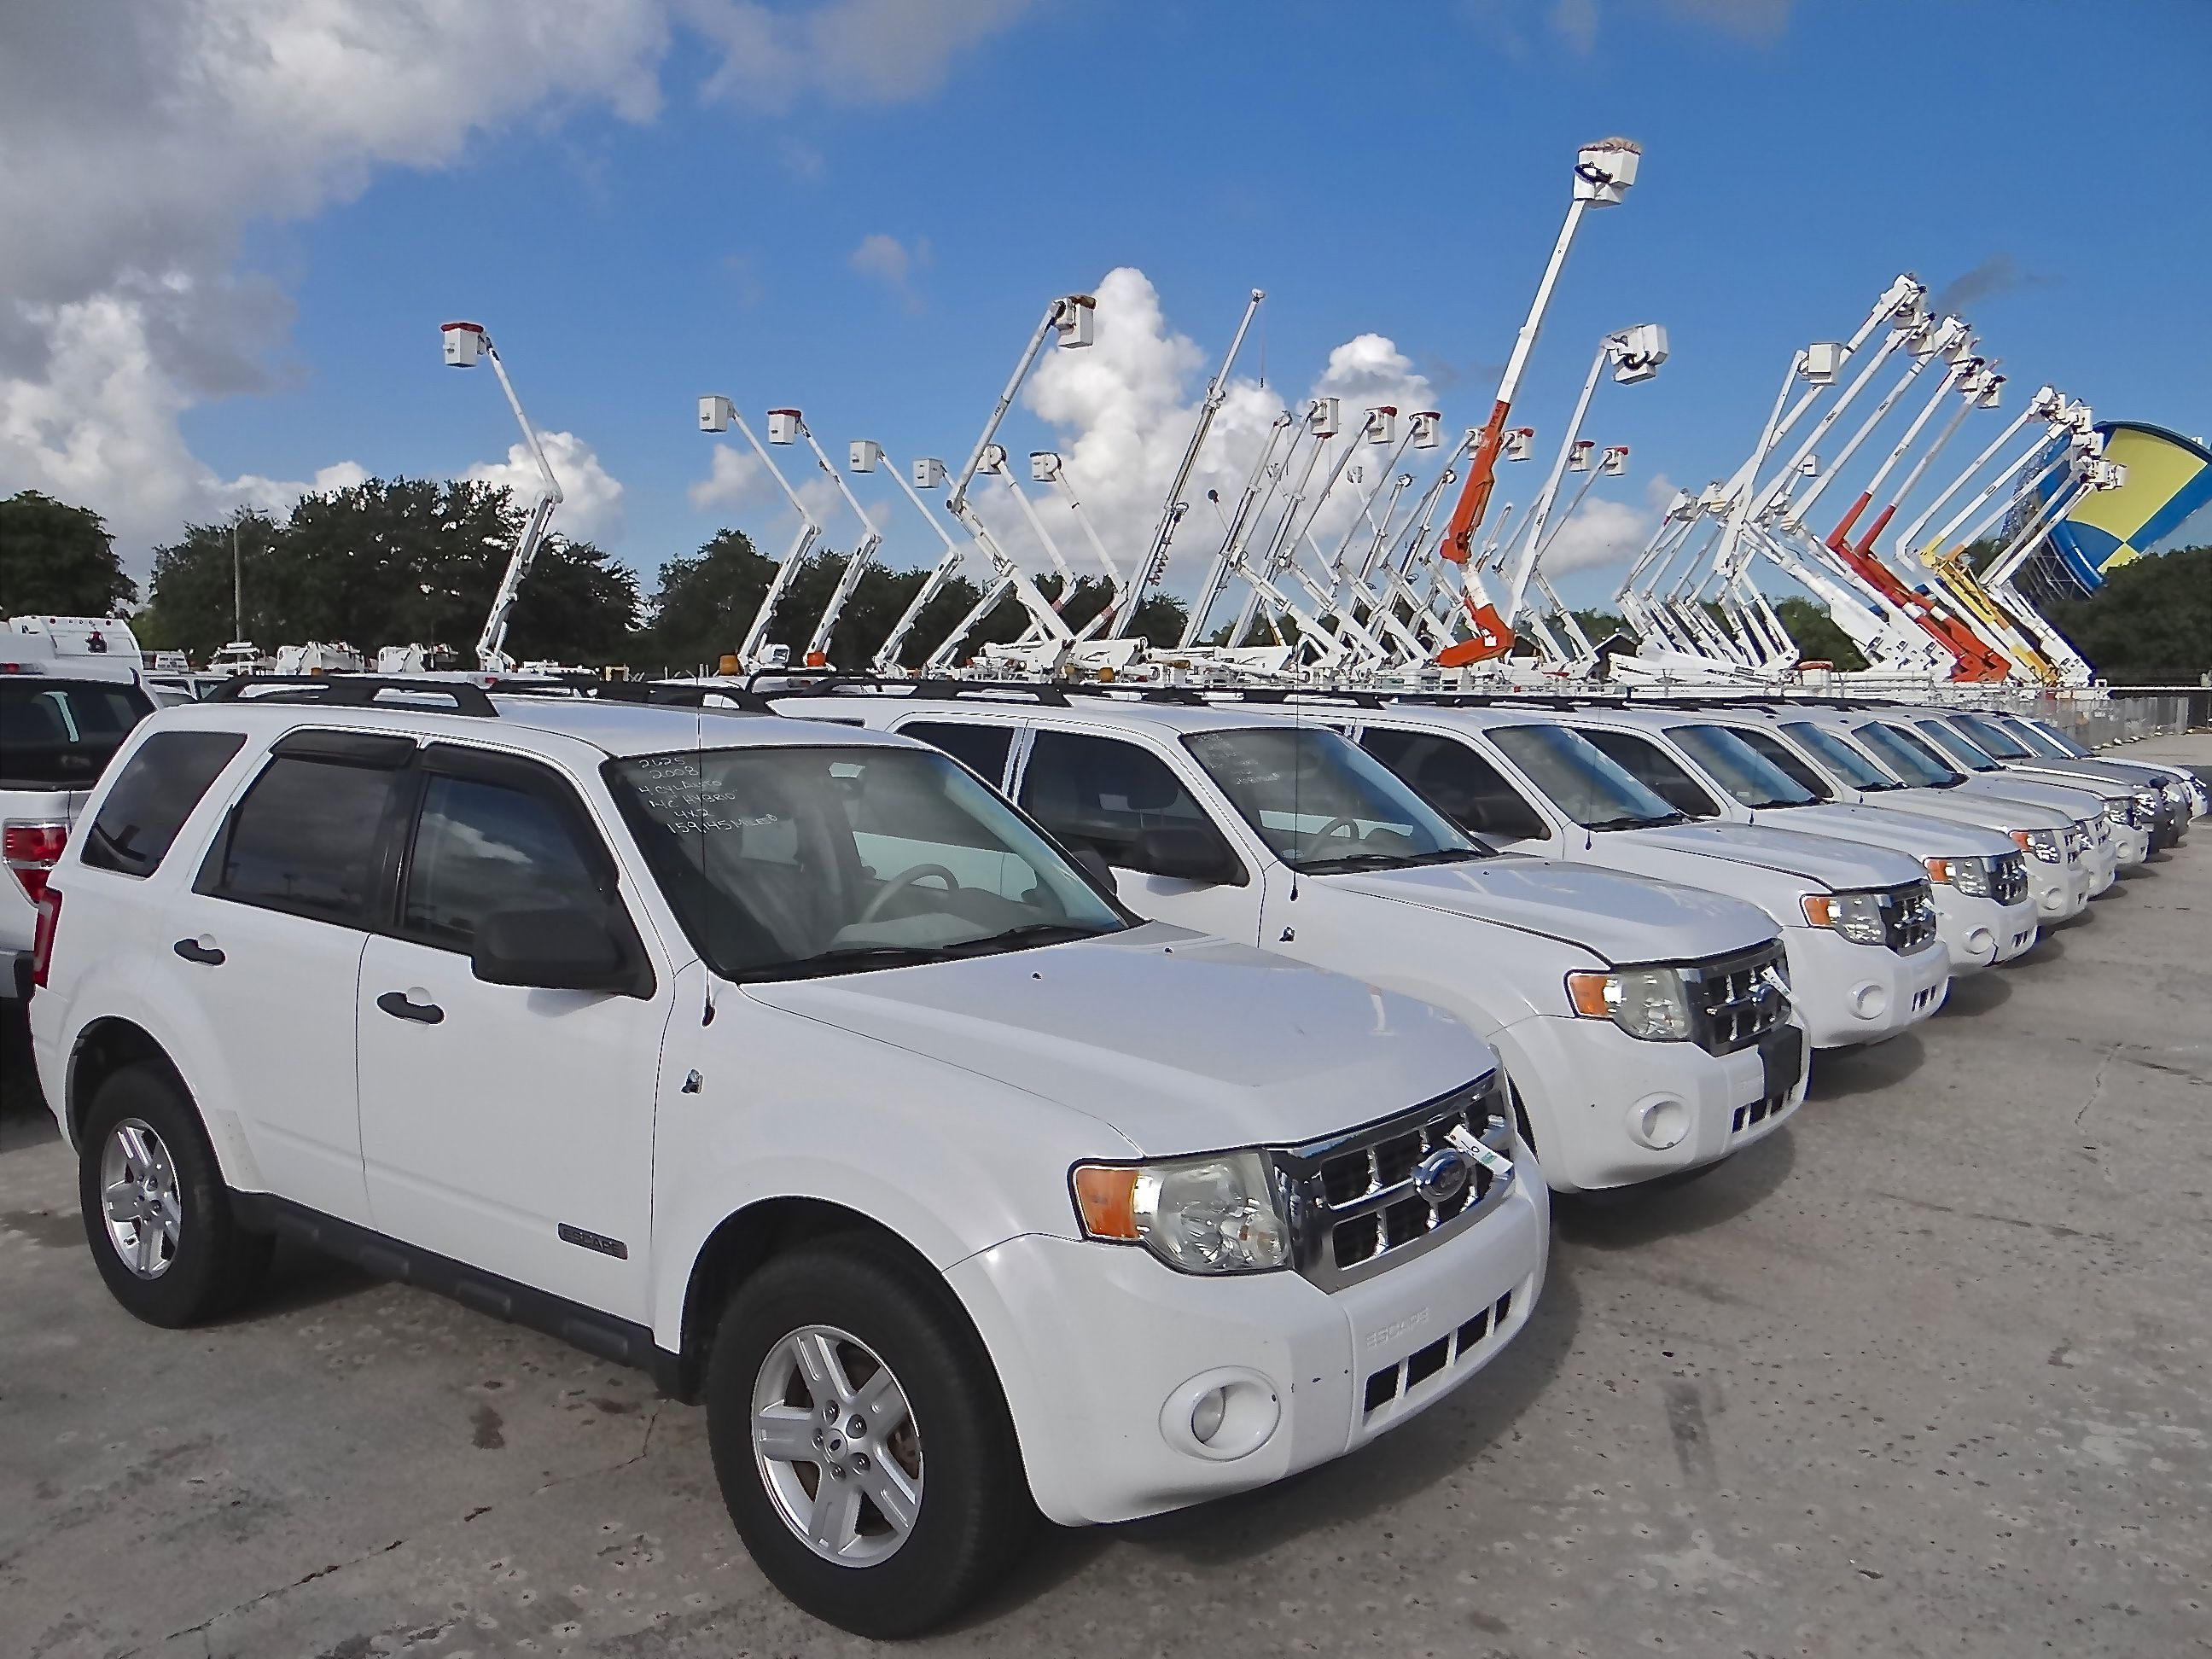 Craigslist San Antonio Cars For Sale By Owner ...